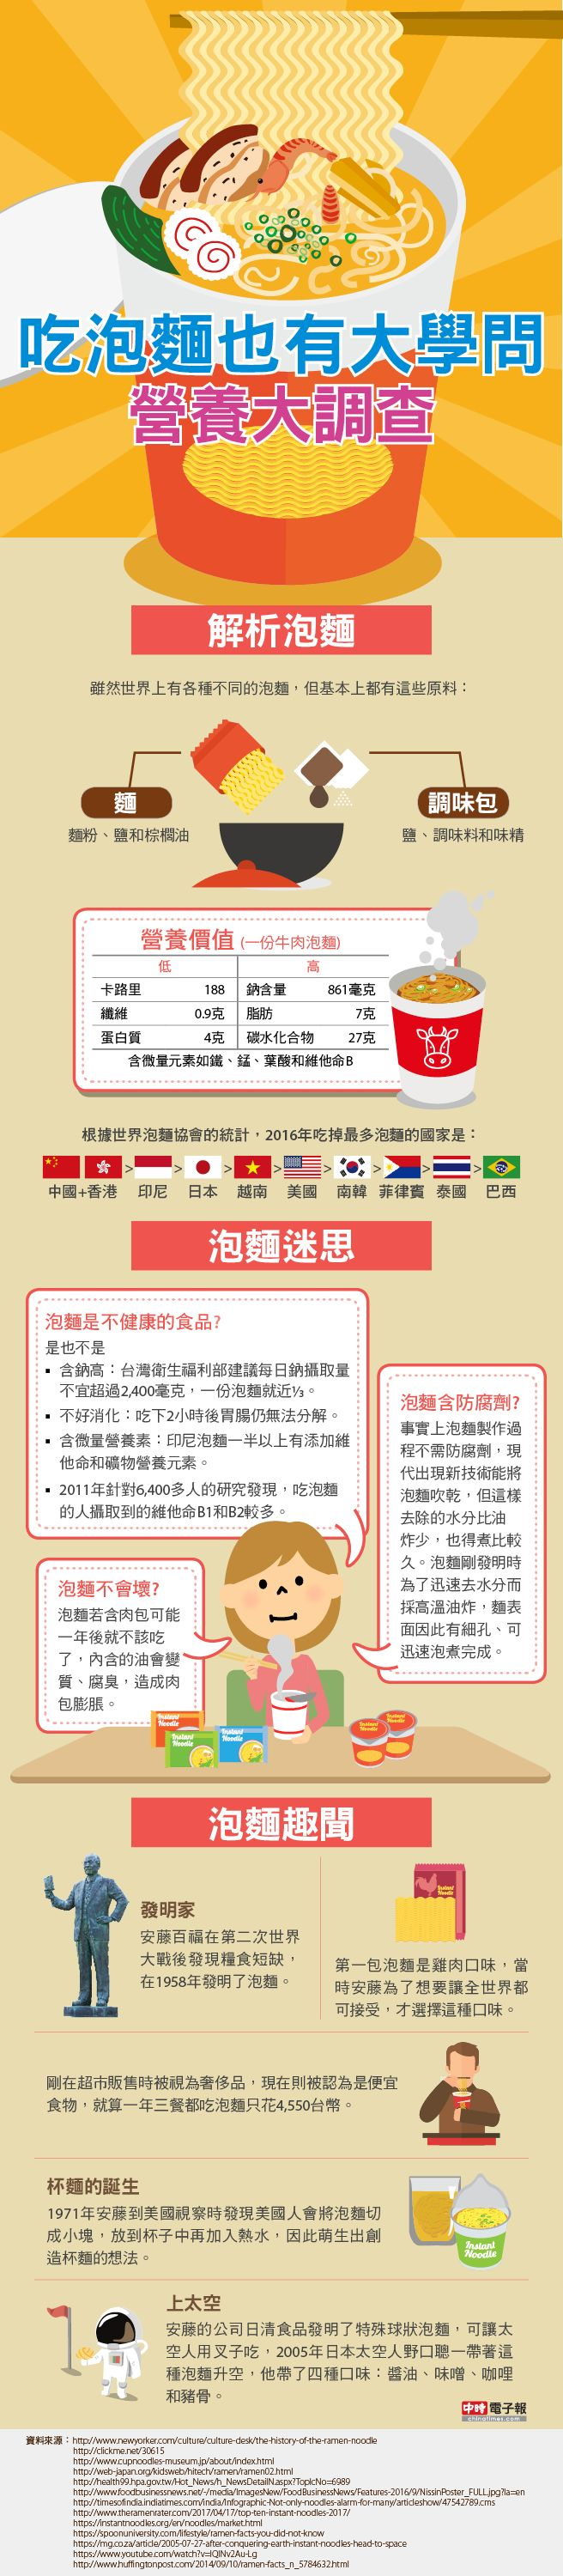 圖解新聞》吃泡麵也有大學問 營養大調查 Infographic: instant ramen or noodles is really unhealthy?